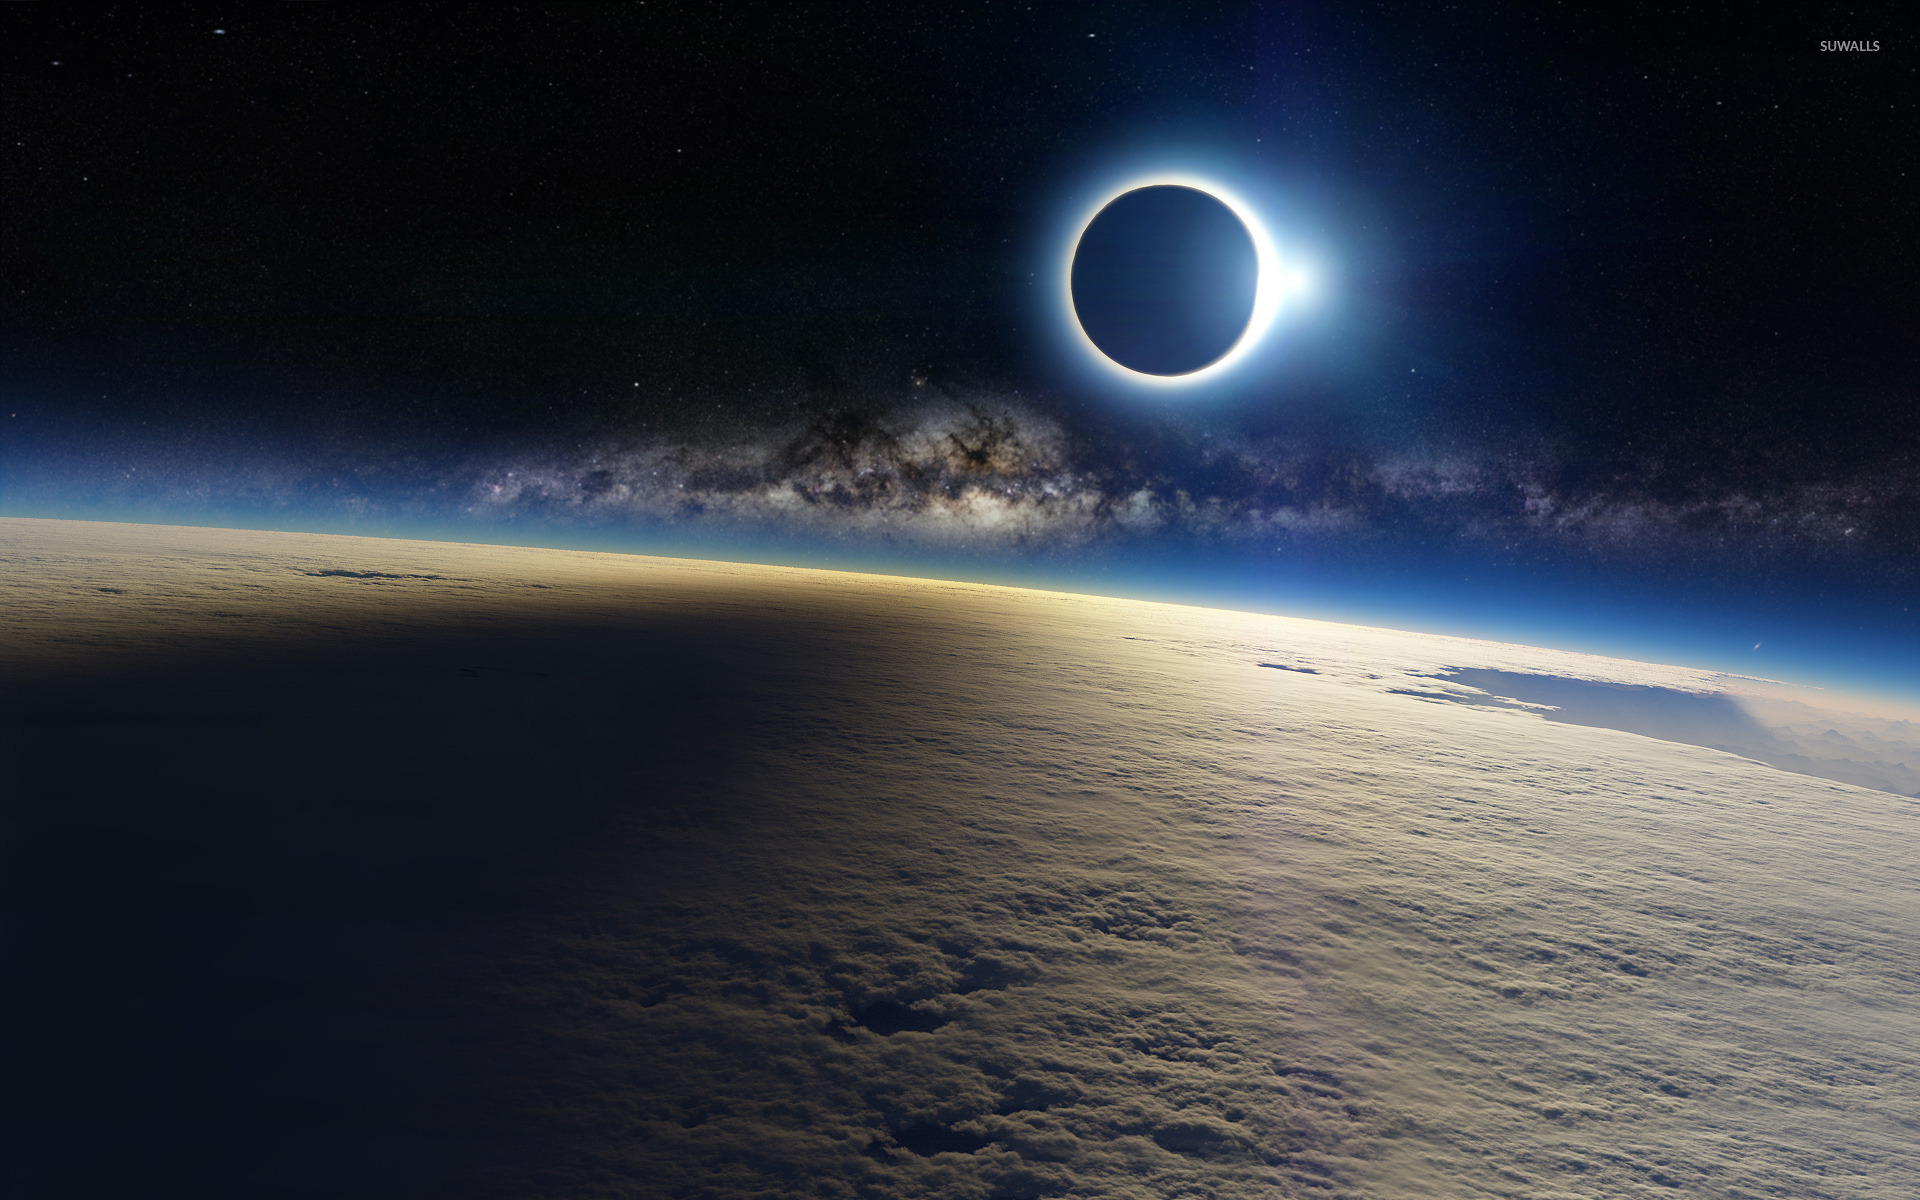 Eclipse Wallpaper - Solar Eclipse From Space , HD Wallpaper & Backgrounds